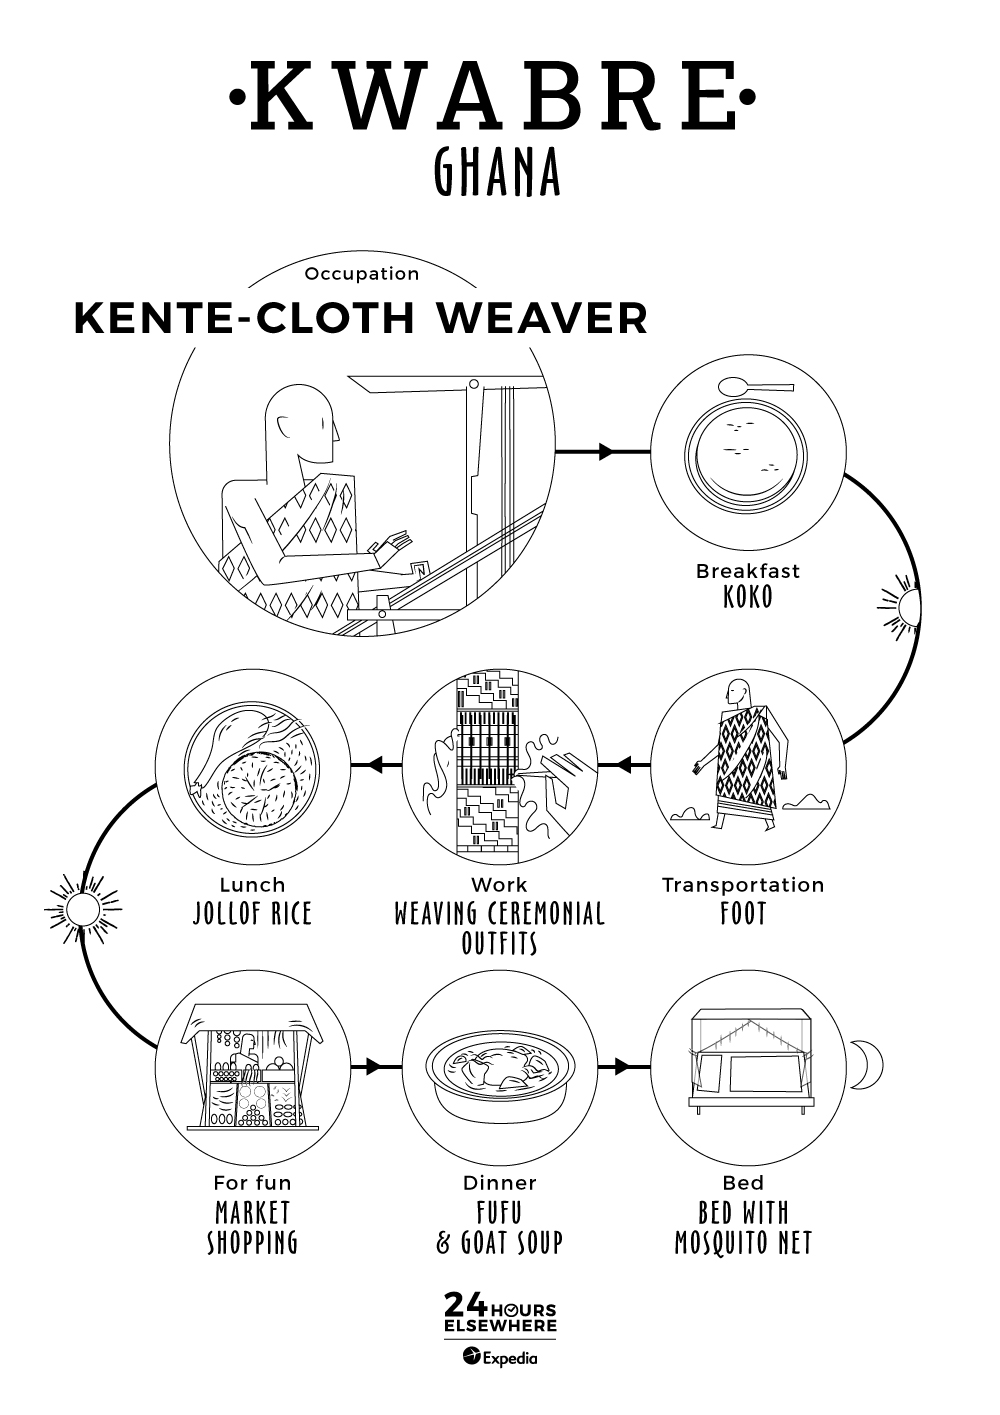 A Day in the Life of a Kente Cloth Weaver in Kwabre in Ghana! #kidscoloring #Ghana #dayinthelife